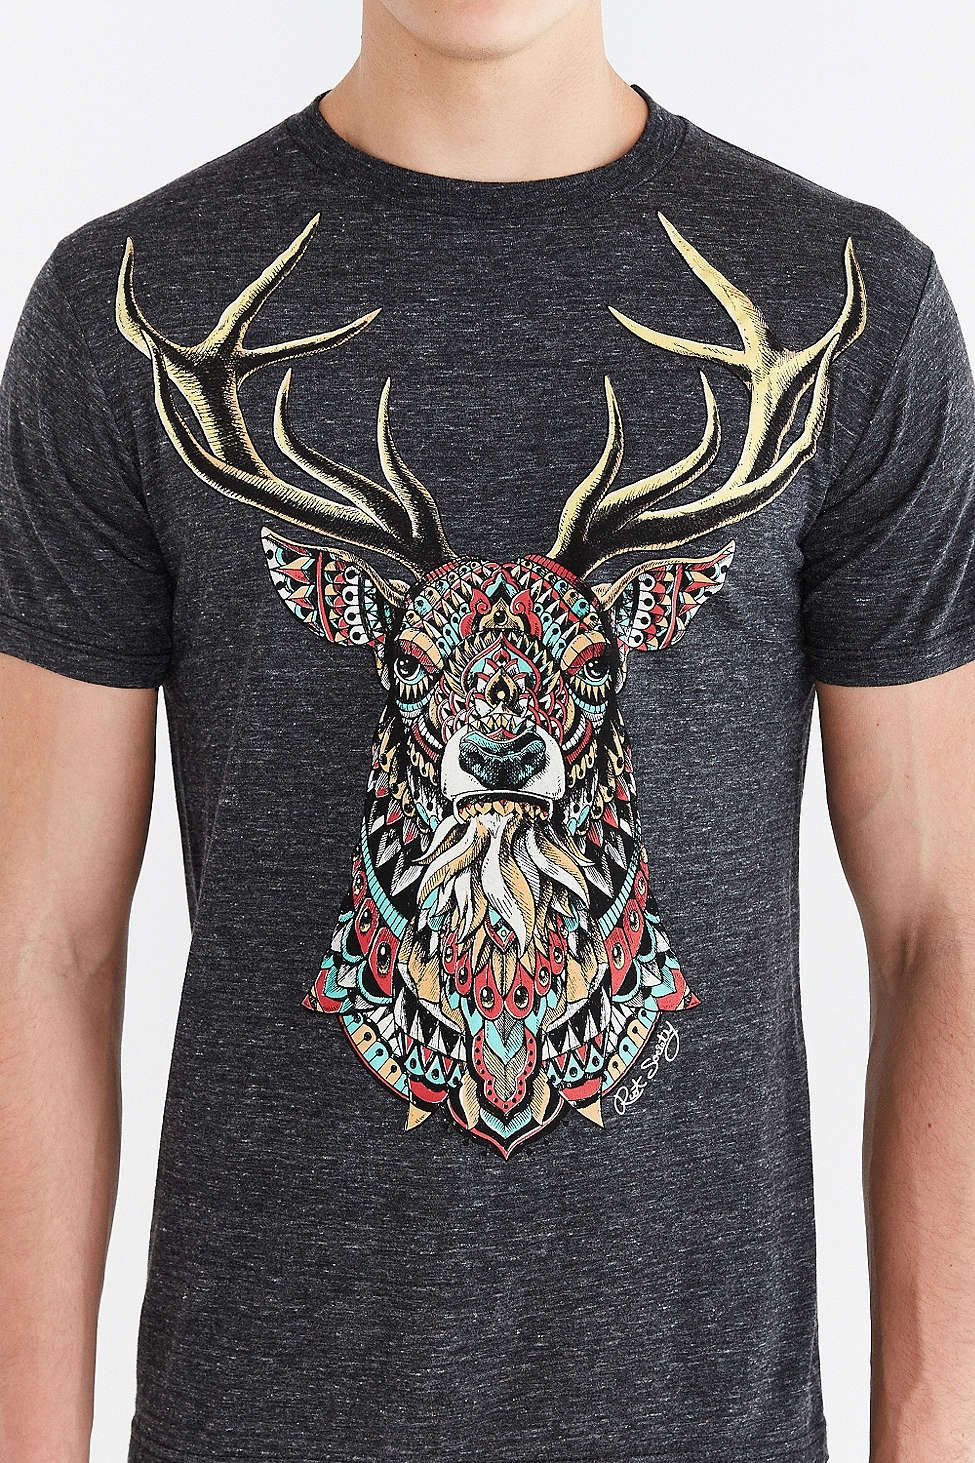 bc70ac32c Riot Society Ornate Buck Tee | Coolest Design | Urban outfitters ...